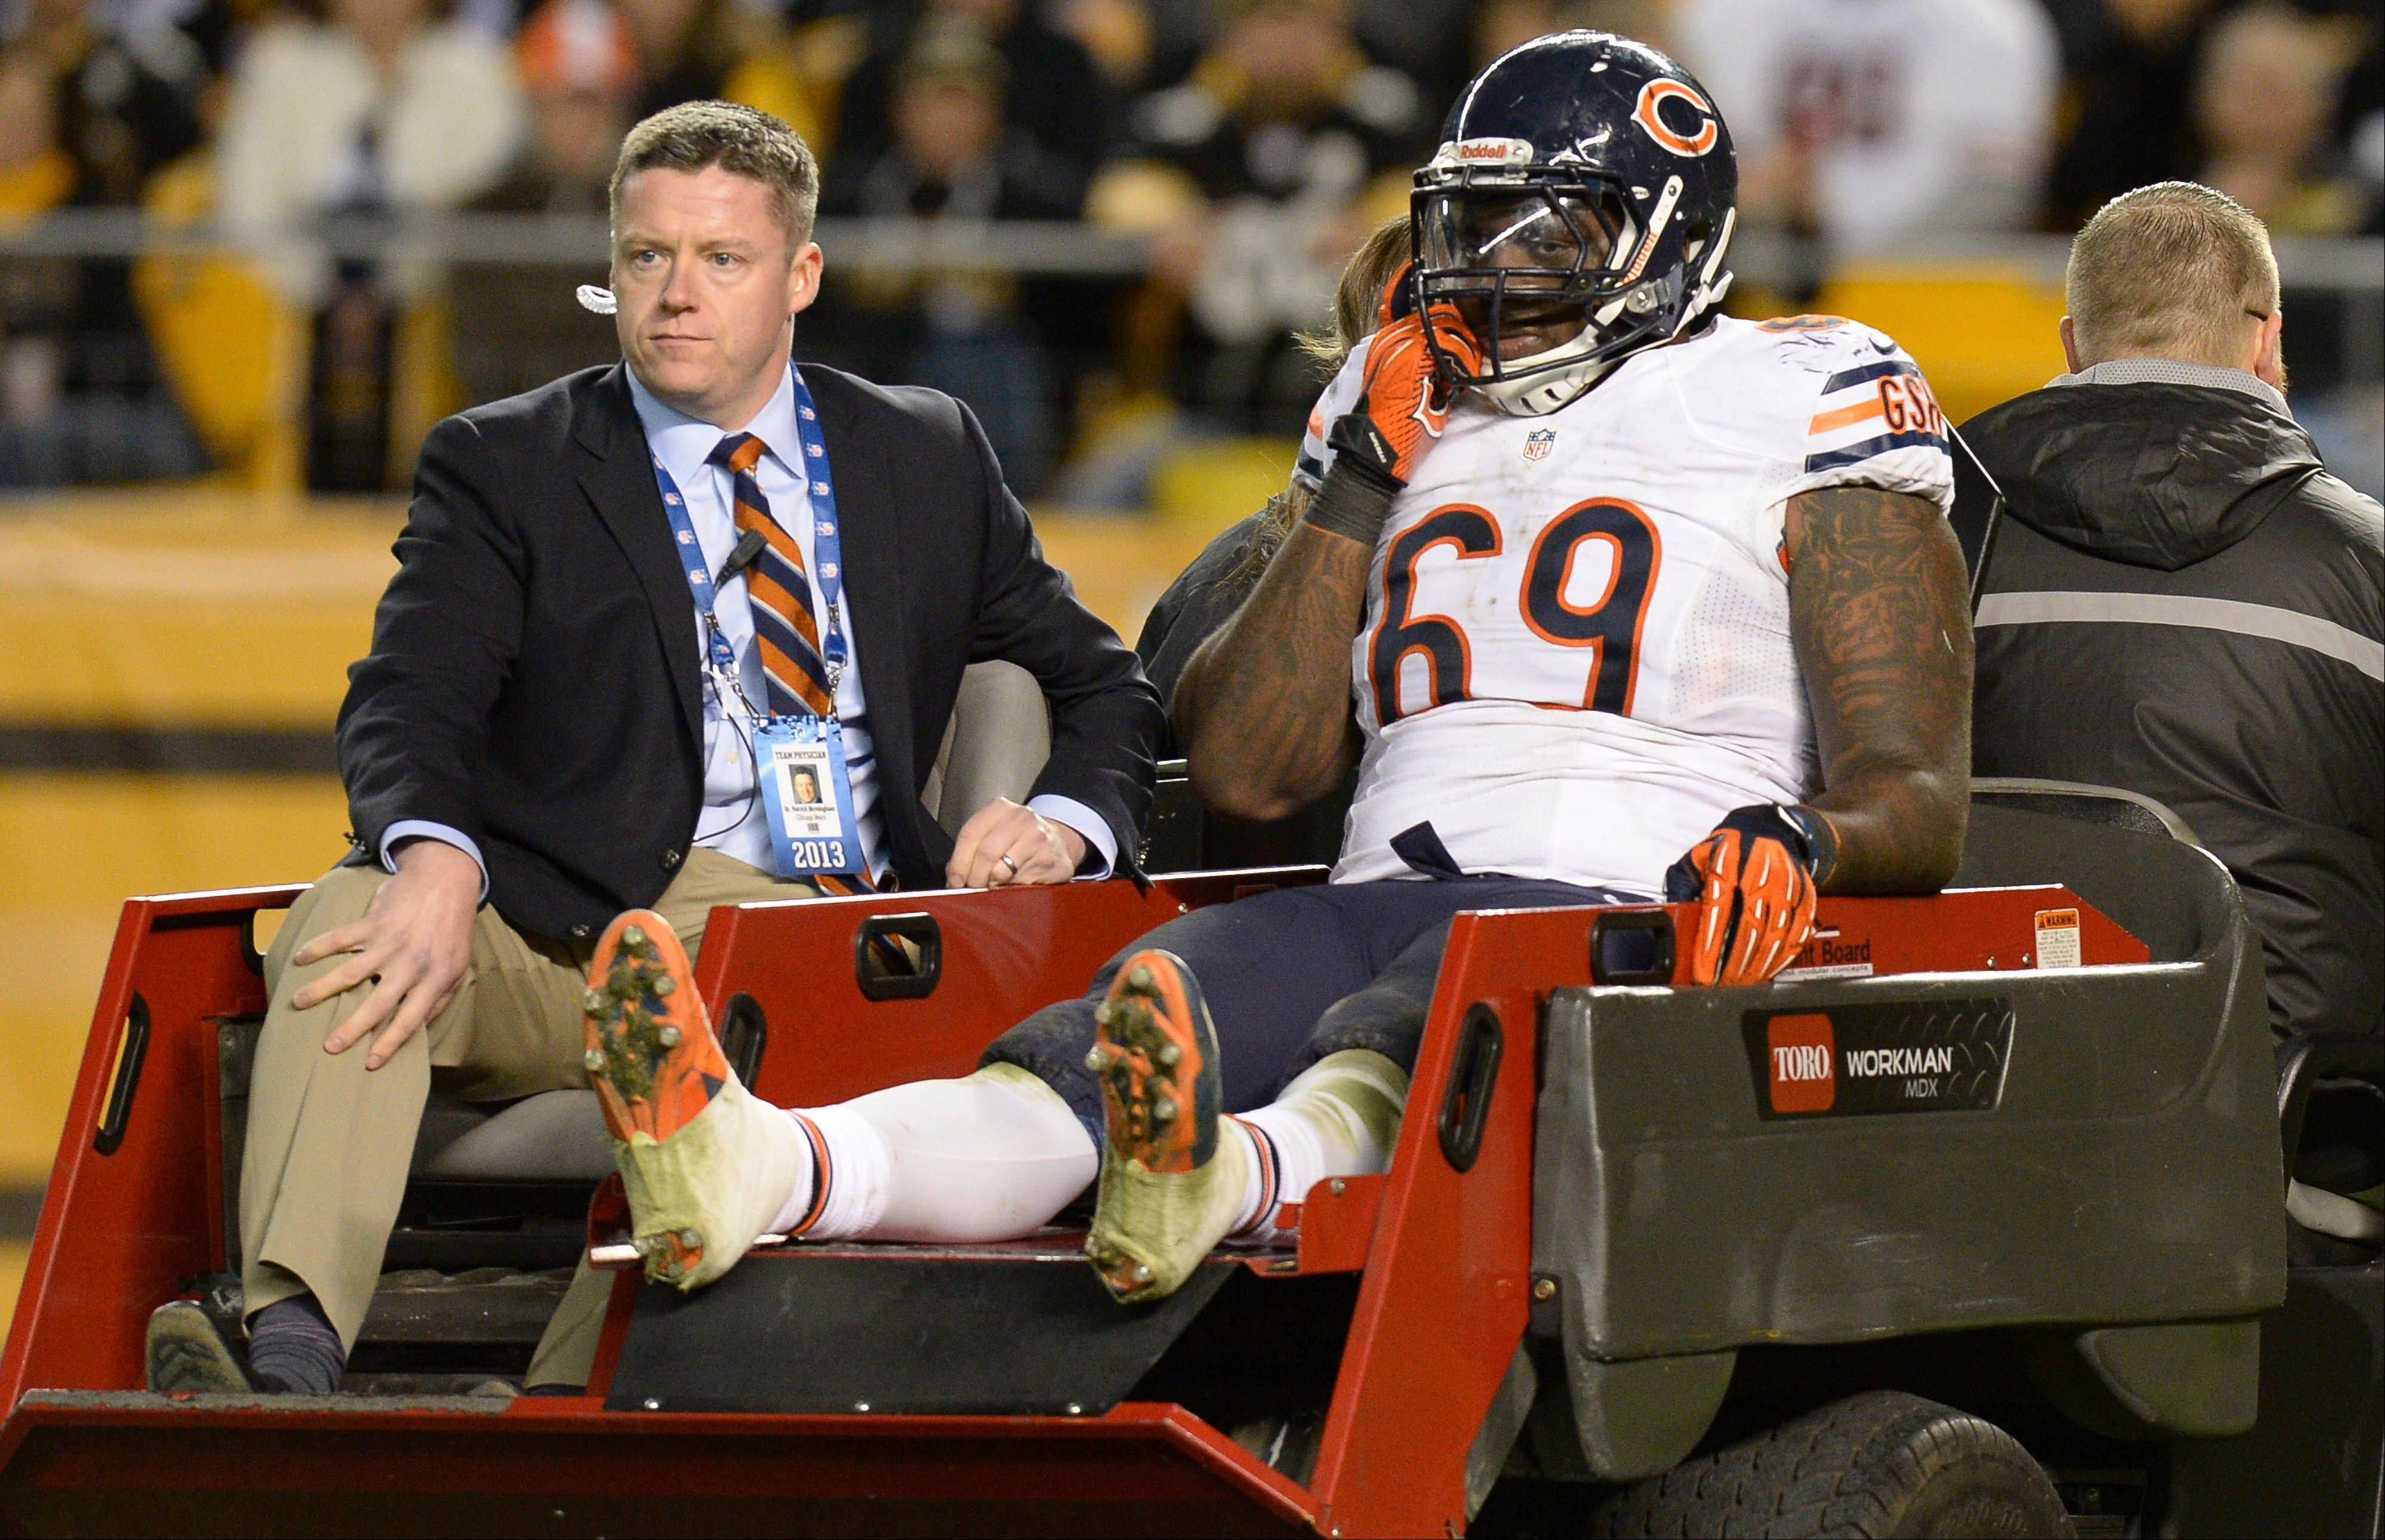 Bears defensive tackle Henry Melton s carted off after being injured in the third quarter of Sunday's game in Pittsburgh.